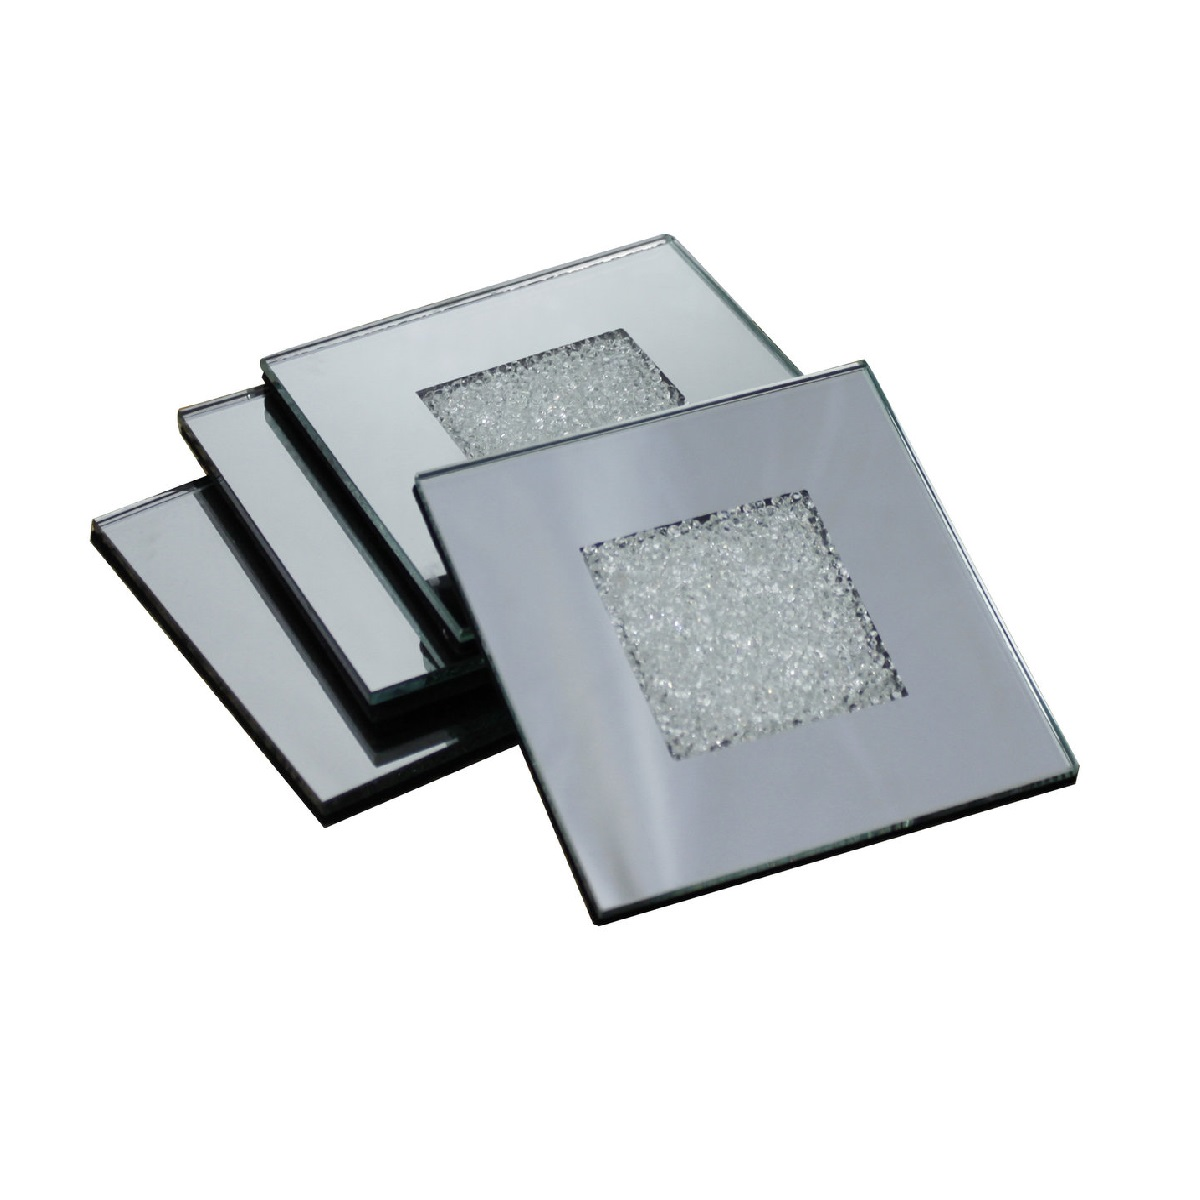 Where To Buy Coasters Swarovski Crystal Filled Mirrored Coasters Set Of 4